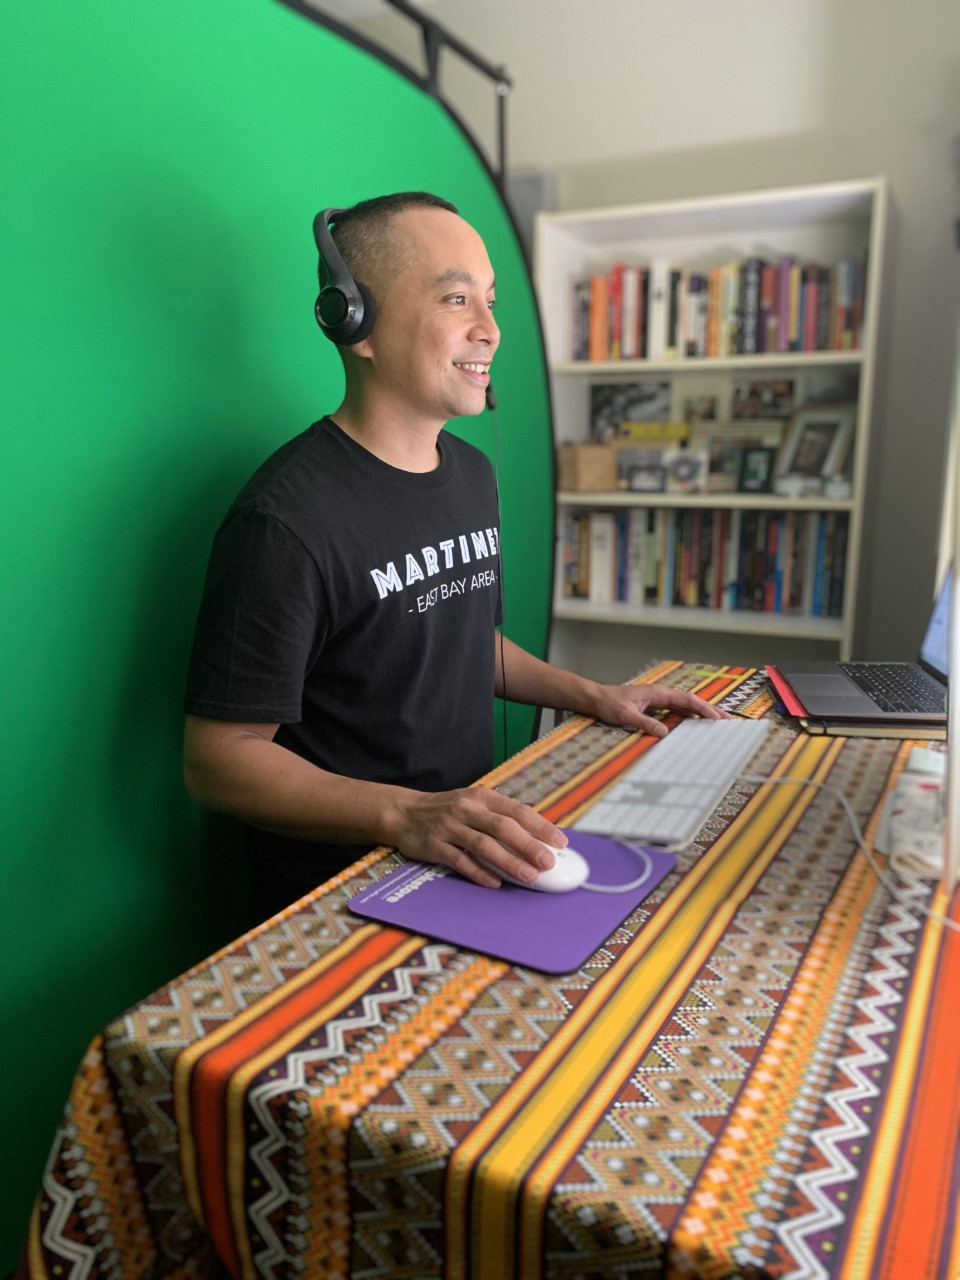 Mark Bautista stands at a desk in front of a green screen.